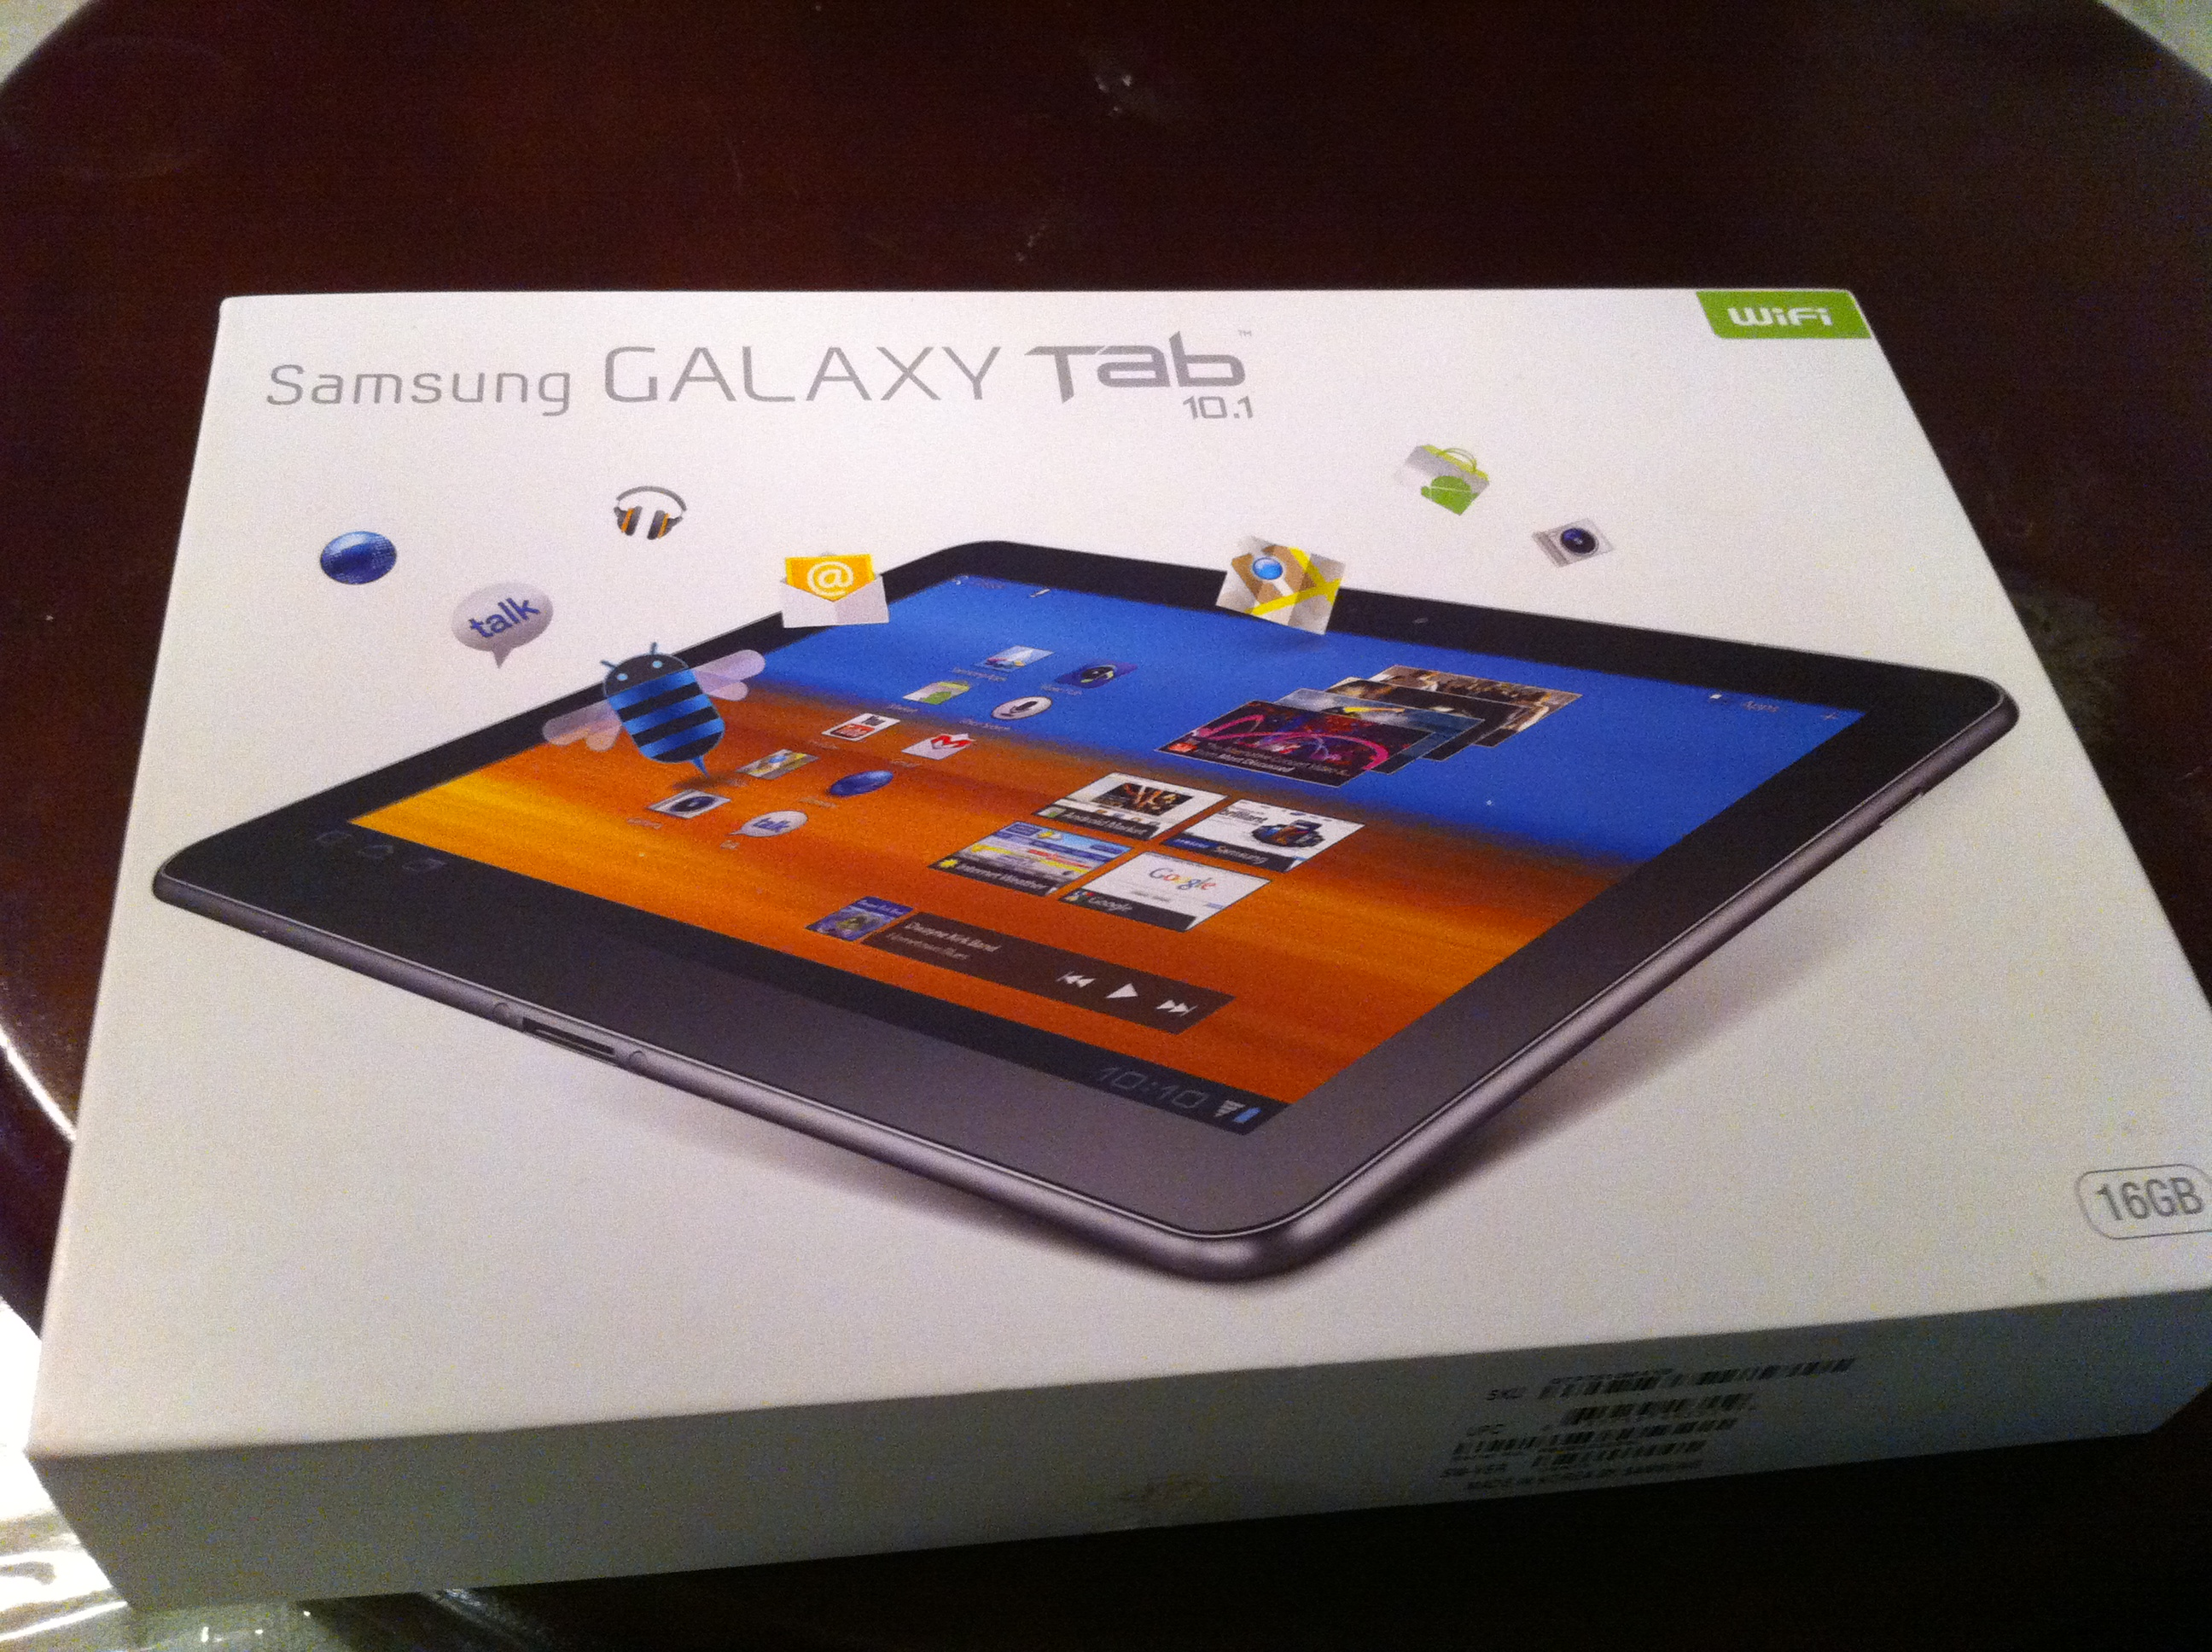 Samsung Galaxy Tab 10.1 TekTok Review